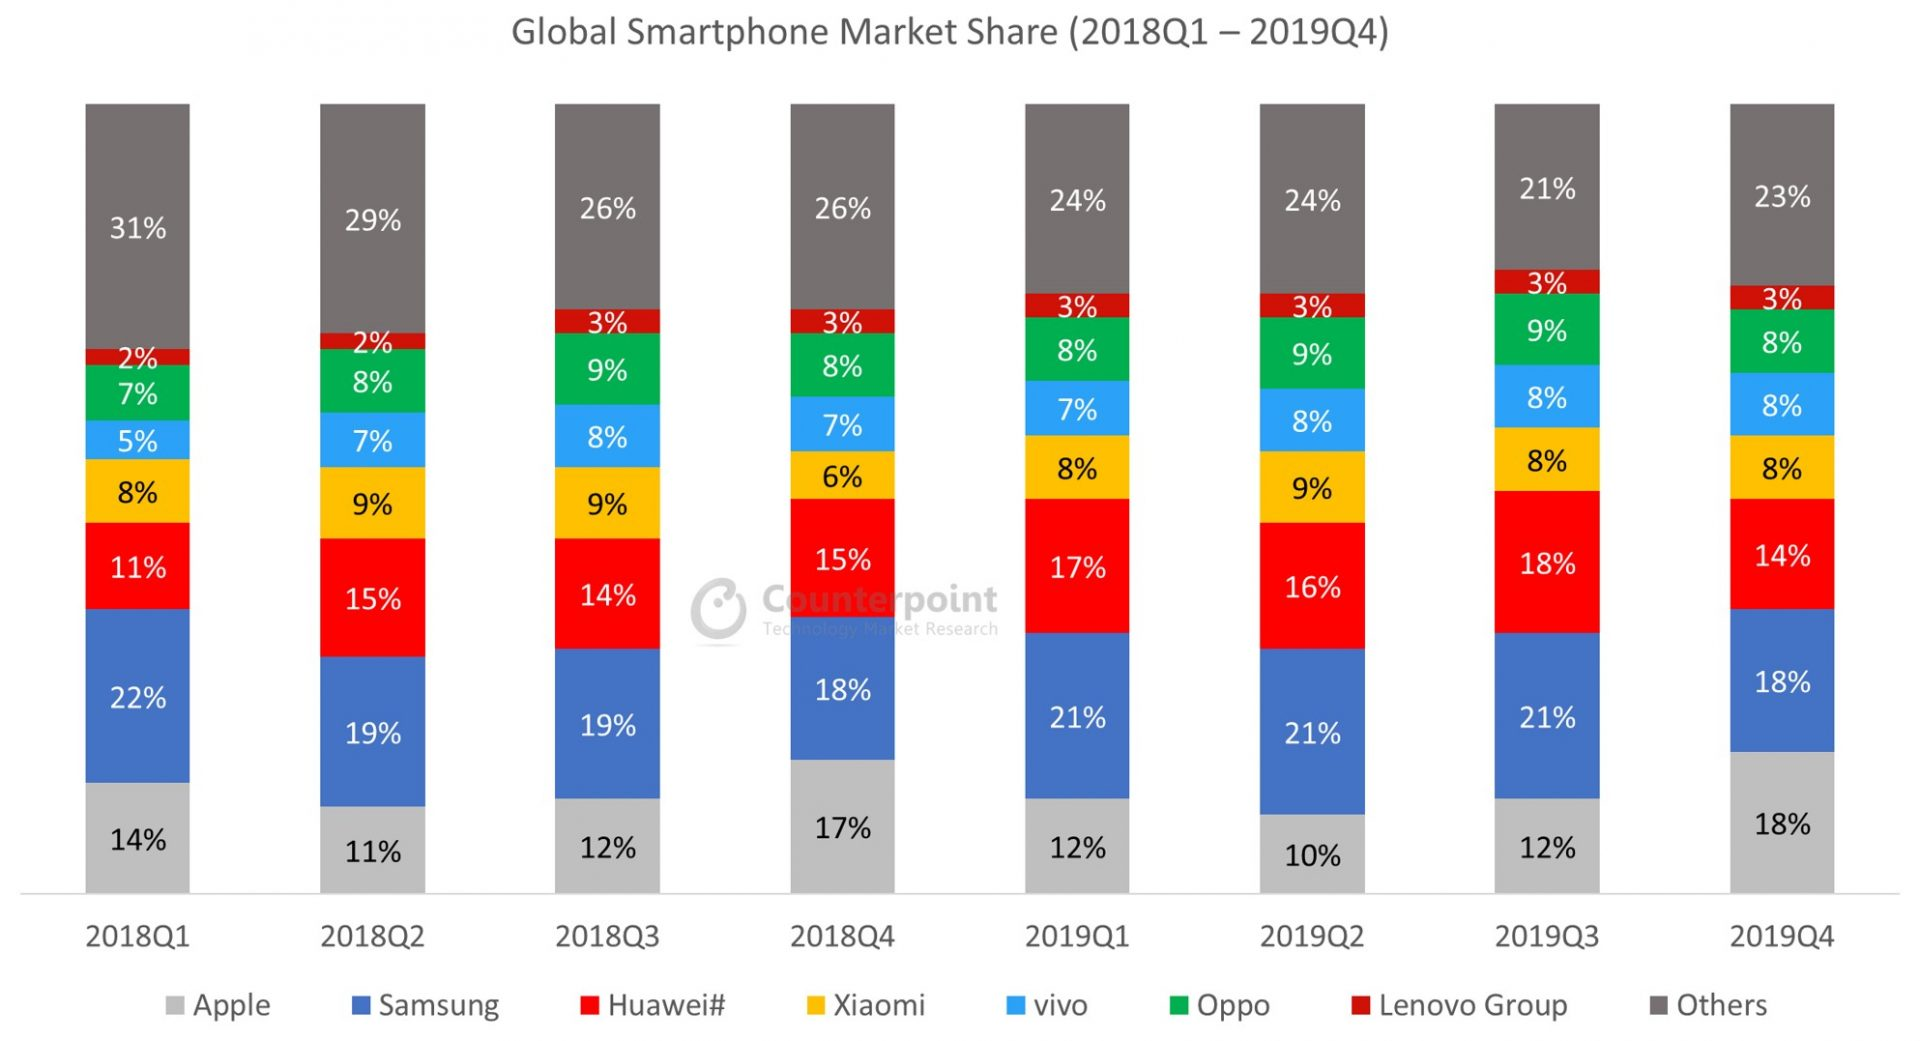 Global Smartphone Market Share 2018Q1-2019Q4